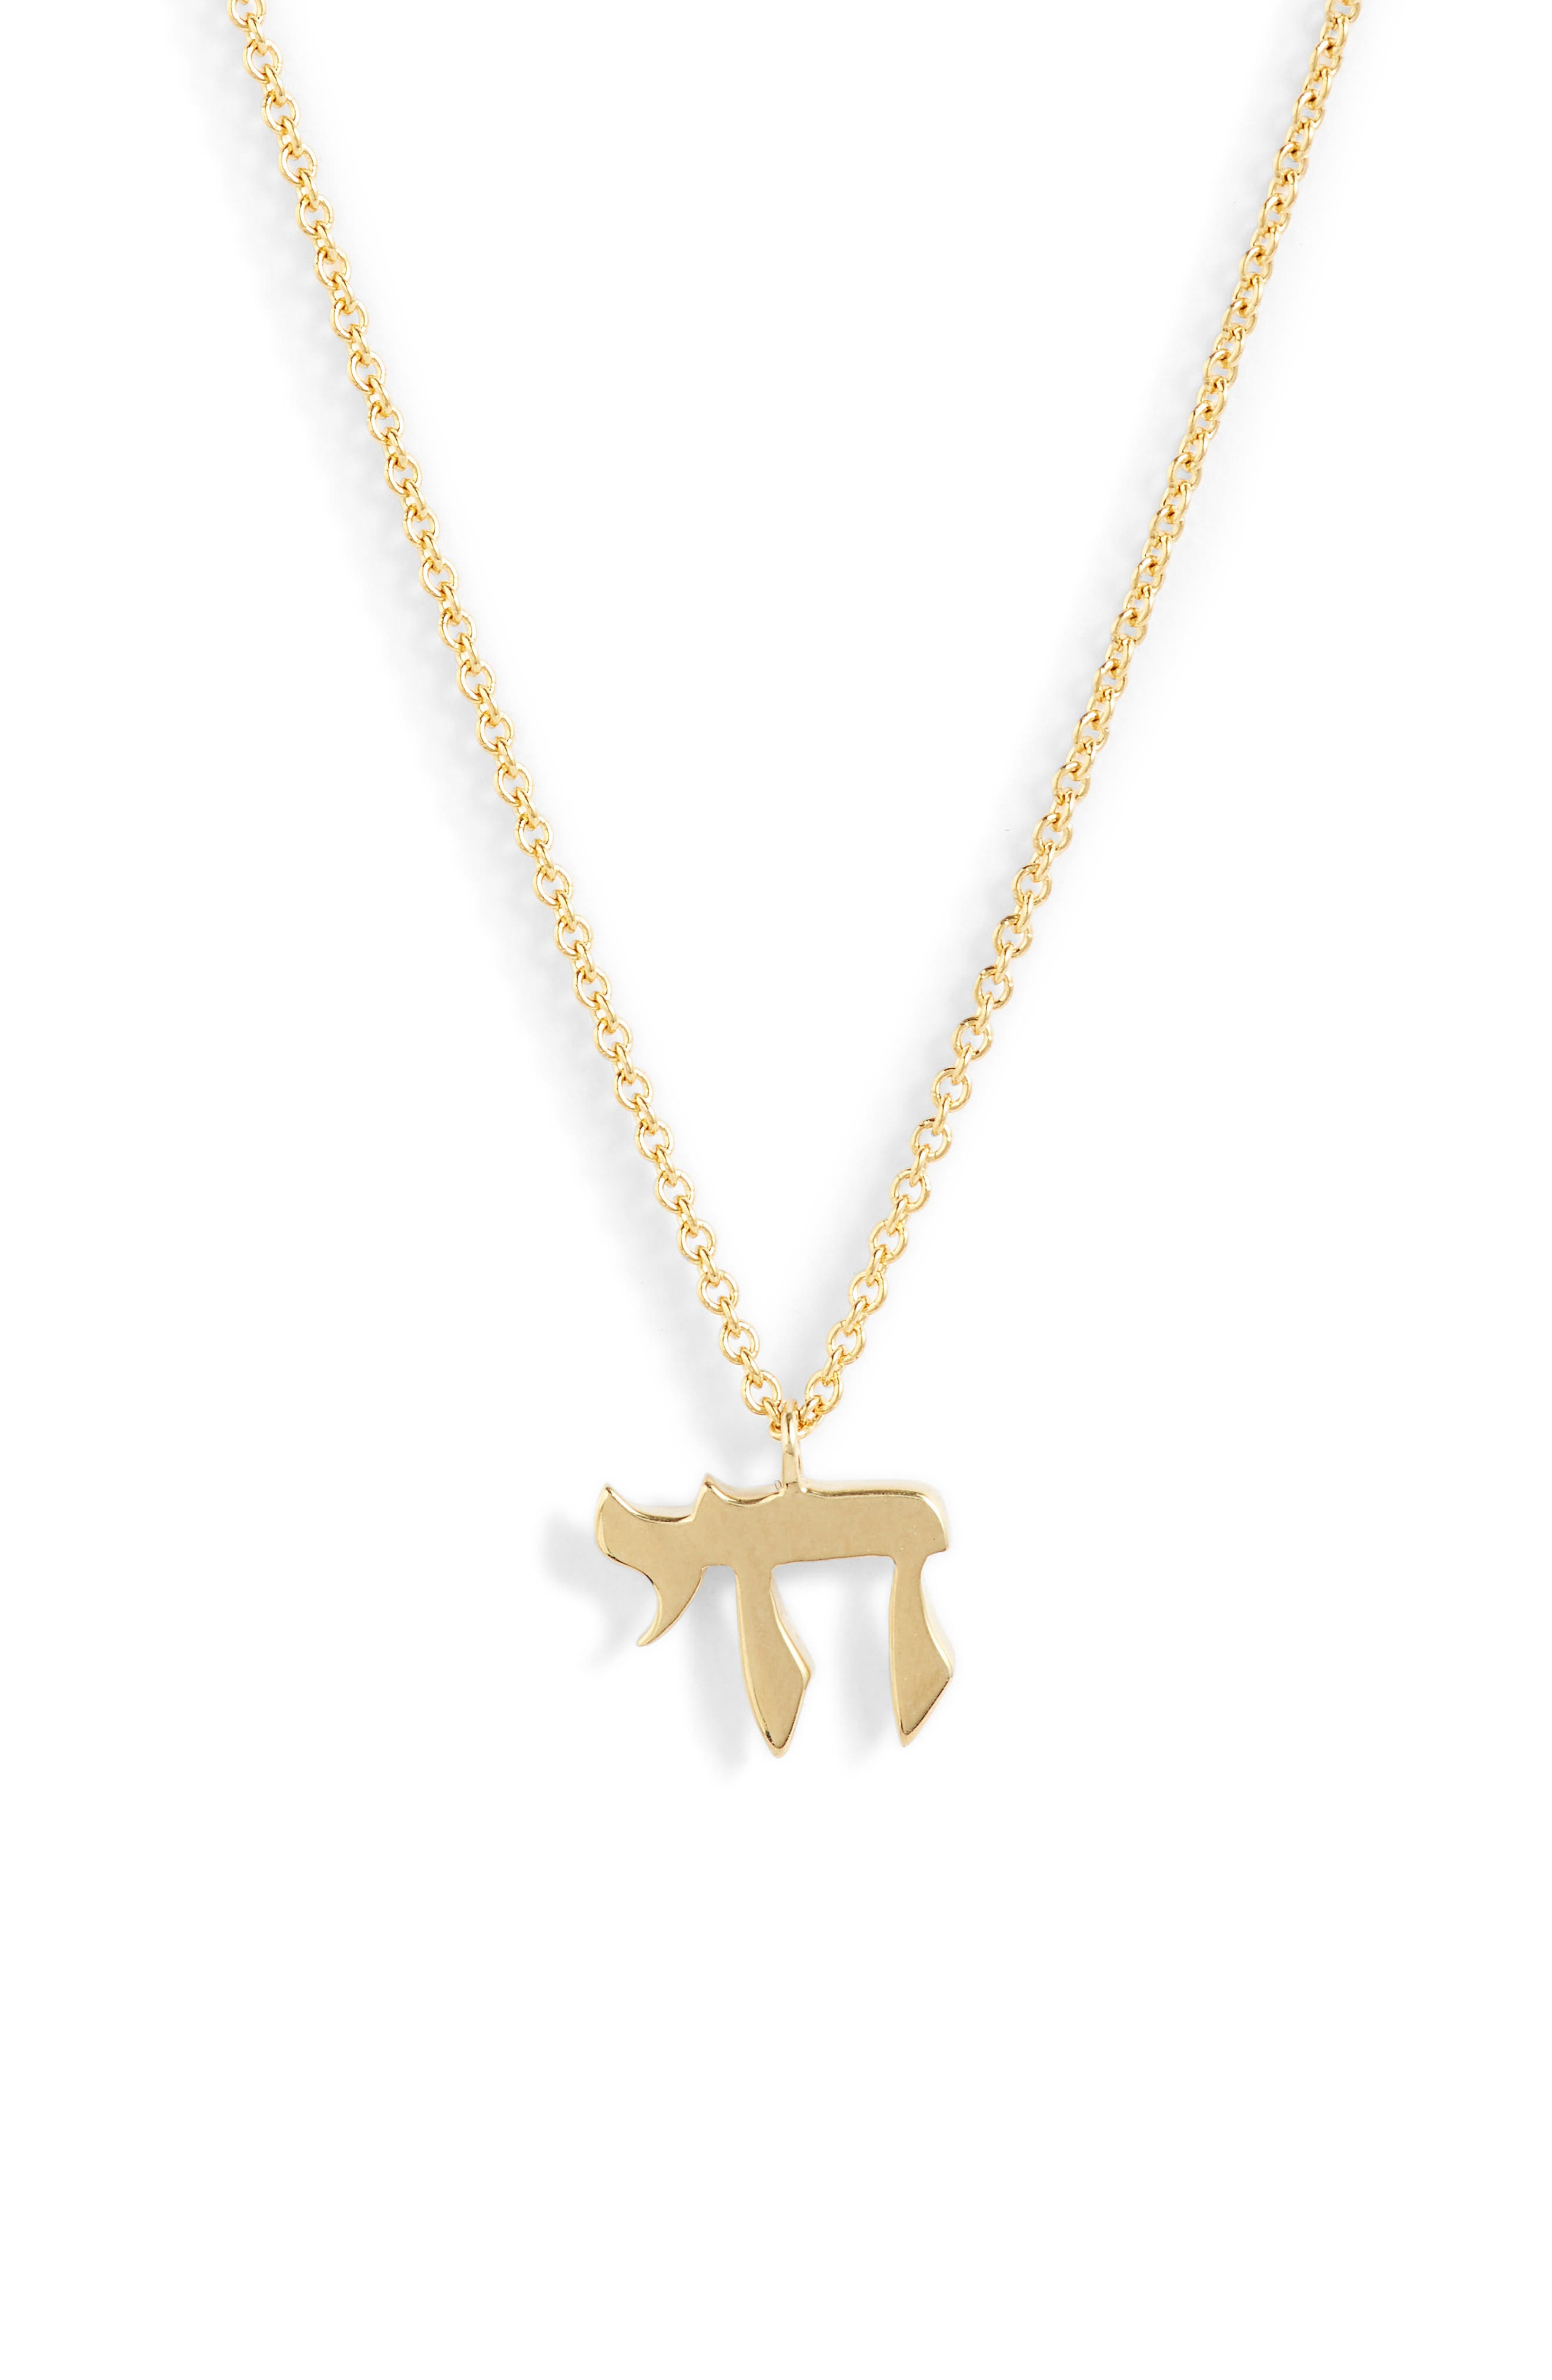 14K Gold Pendant Necklace,                         Main,                         color, YELLOW GOLD/ DIA